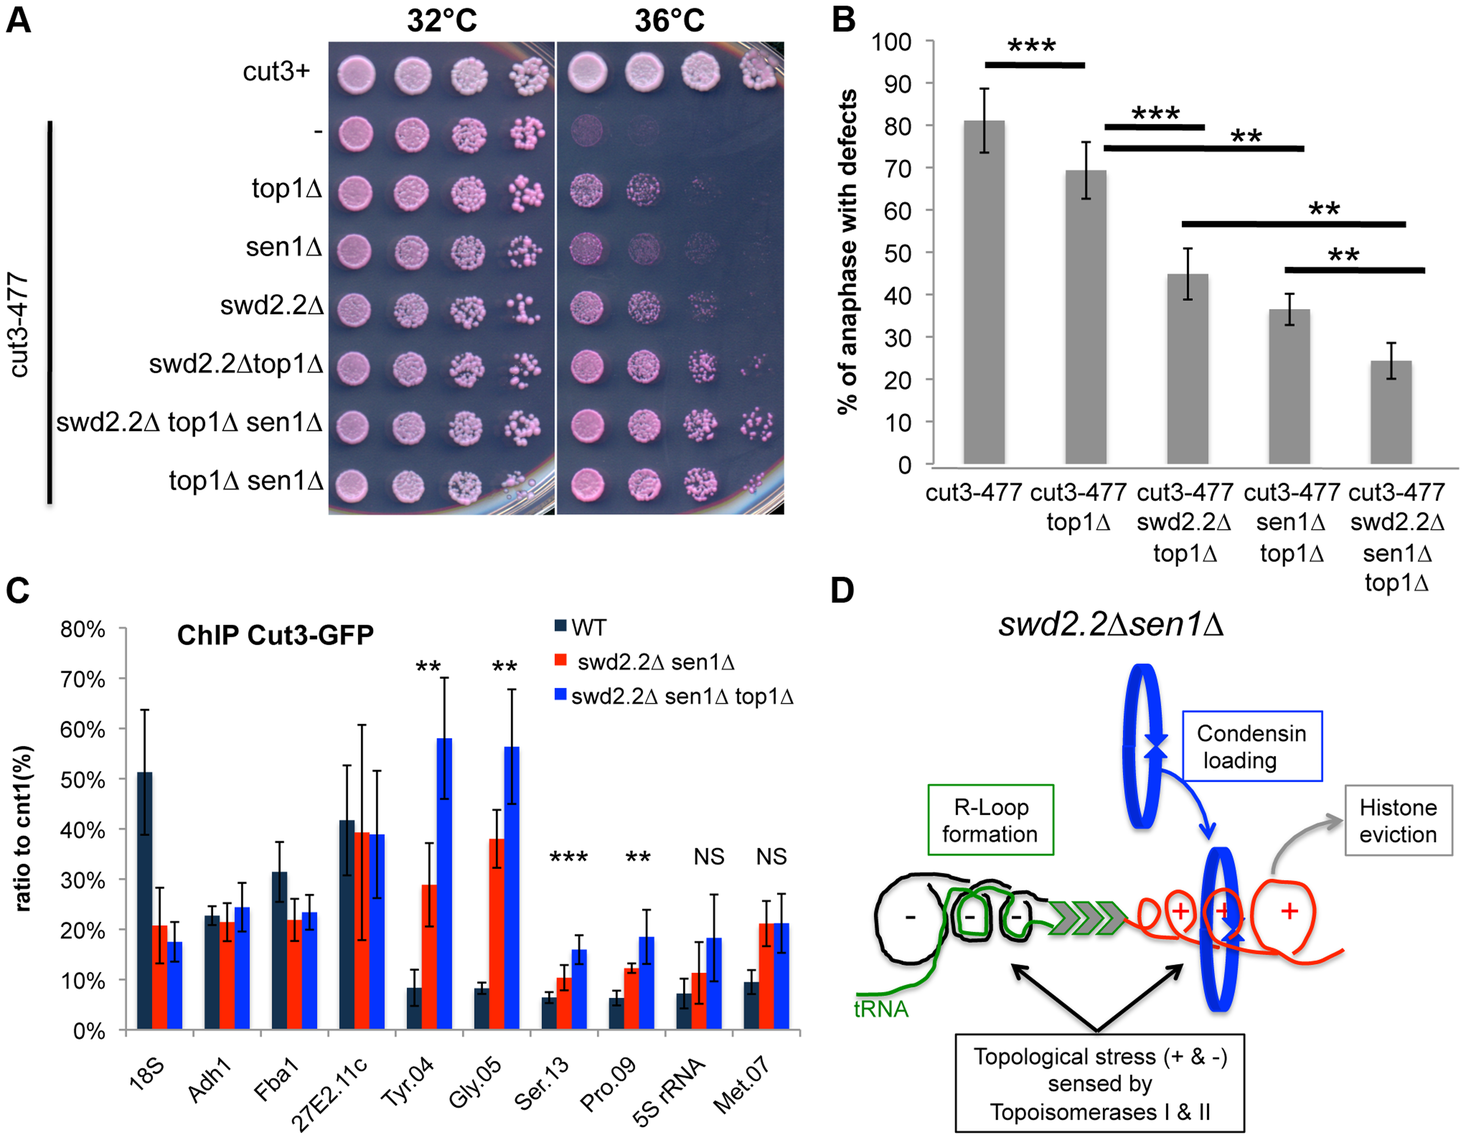 Lack of Top1 further increases the association of condensin with Pol III-transcribed genes when Swd2.2 and Sen1 are missing.